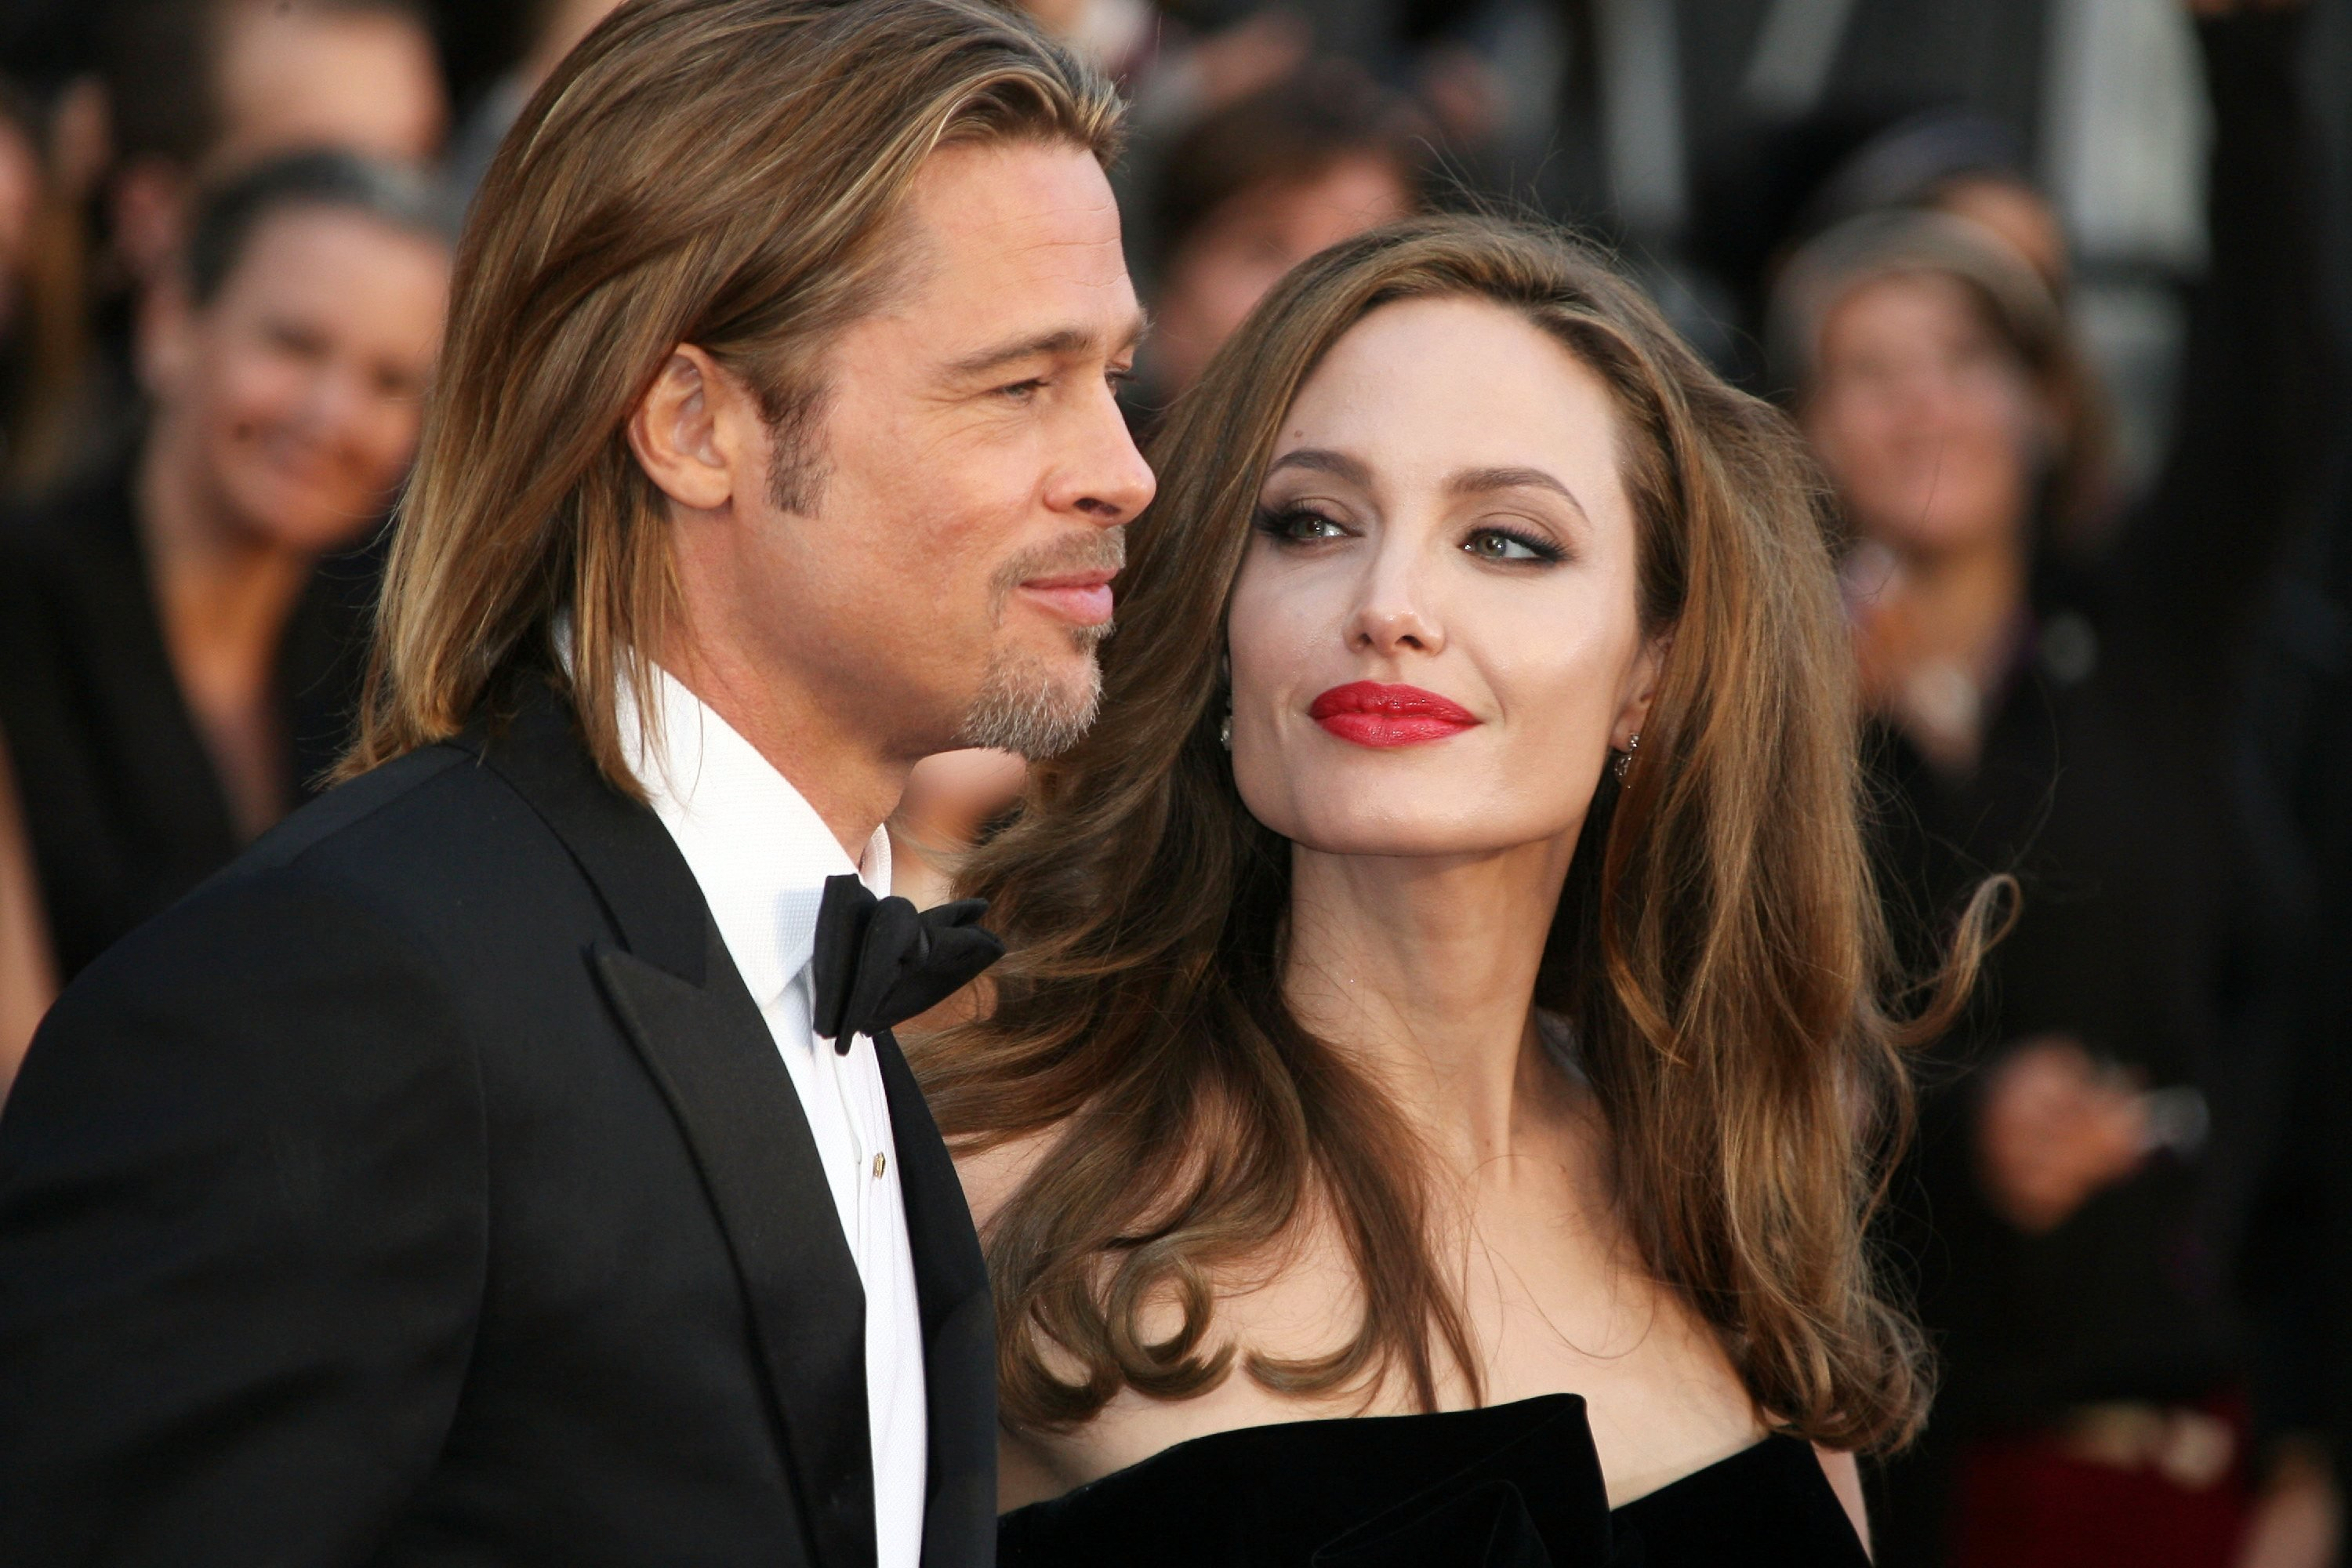 http://famosissimi.myblog.it/wp-content/uploads/sites/314379/2014/03/Angelina-Jolie-Brad-Pitt210513.jpg